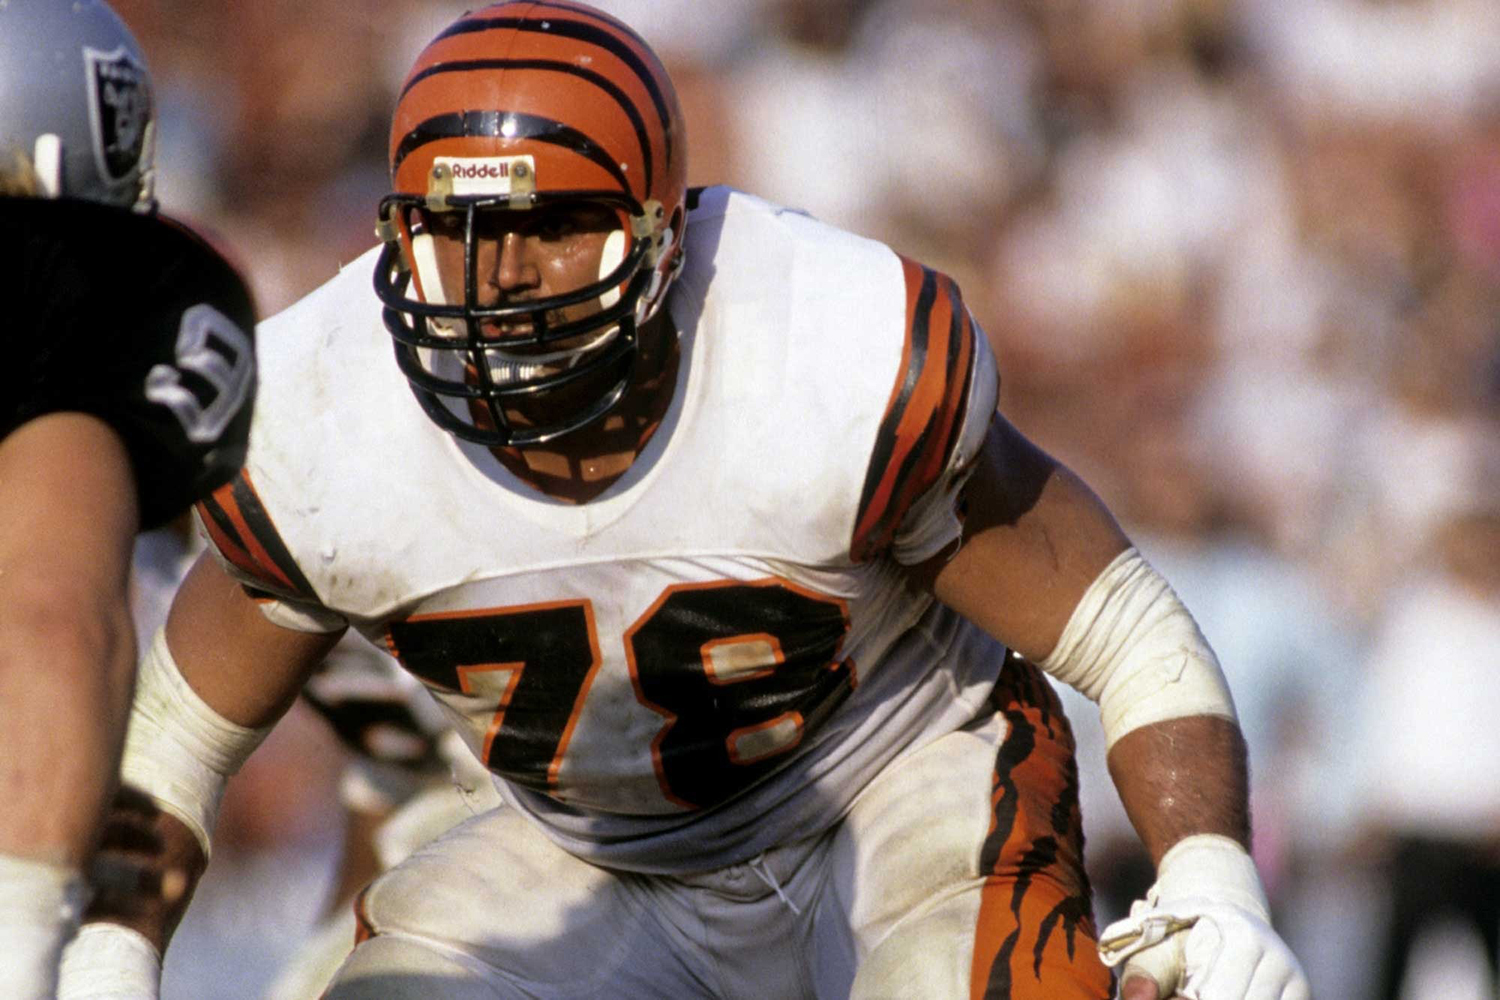 36274b9db07 When NFL Hall of Famer Anthony Munoz was drafted by the Cincinnati Bengals  as the 3rd overall pick in 1980, he was regarded as one of the most  intimidating ...